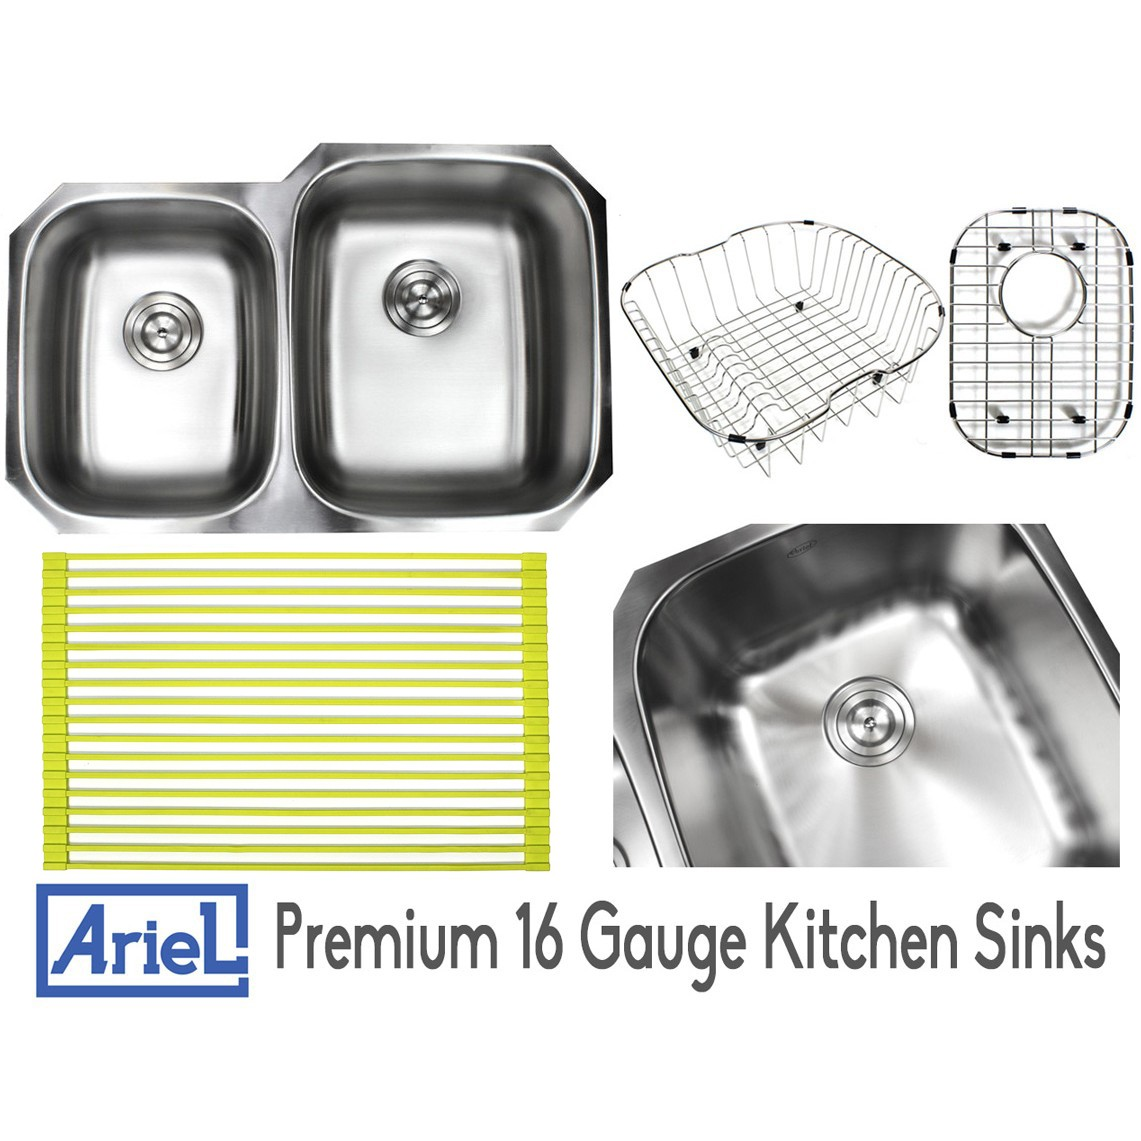 ariel pearl 32 inch premium 16 gauge stainless steel undermount 40 60 double bowl kitchen sink with free accessories ariel pearl 32 inch premium 16 gauge stainless steel undermount 40      rh   cbath com